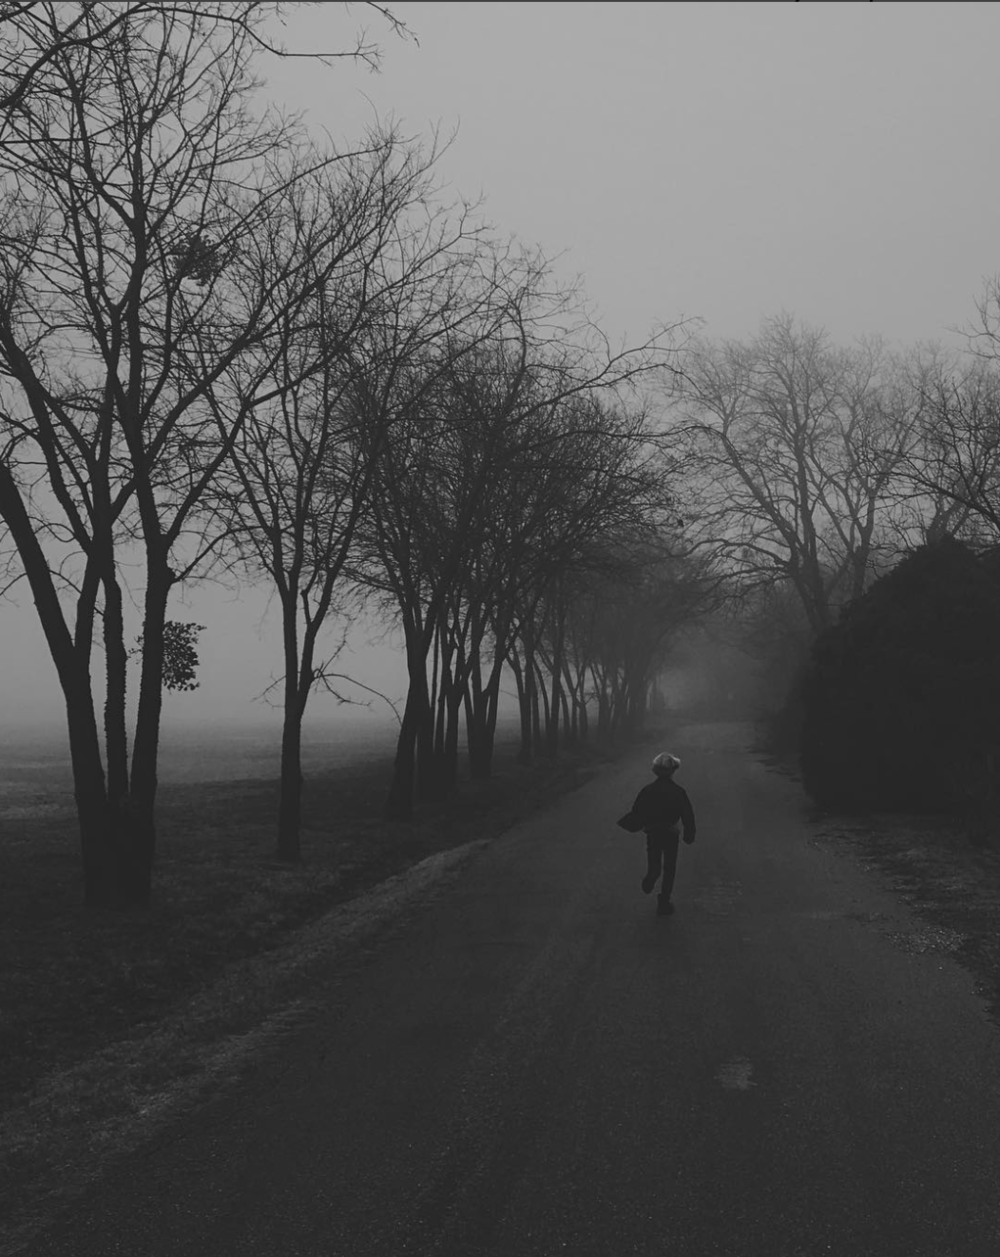 Running through fog from @will_milne.